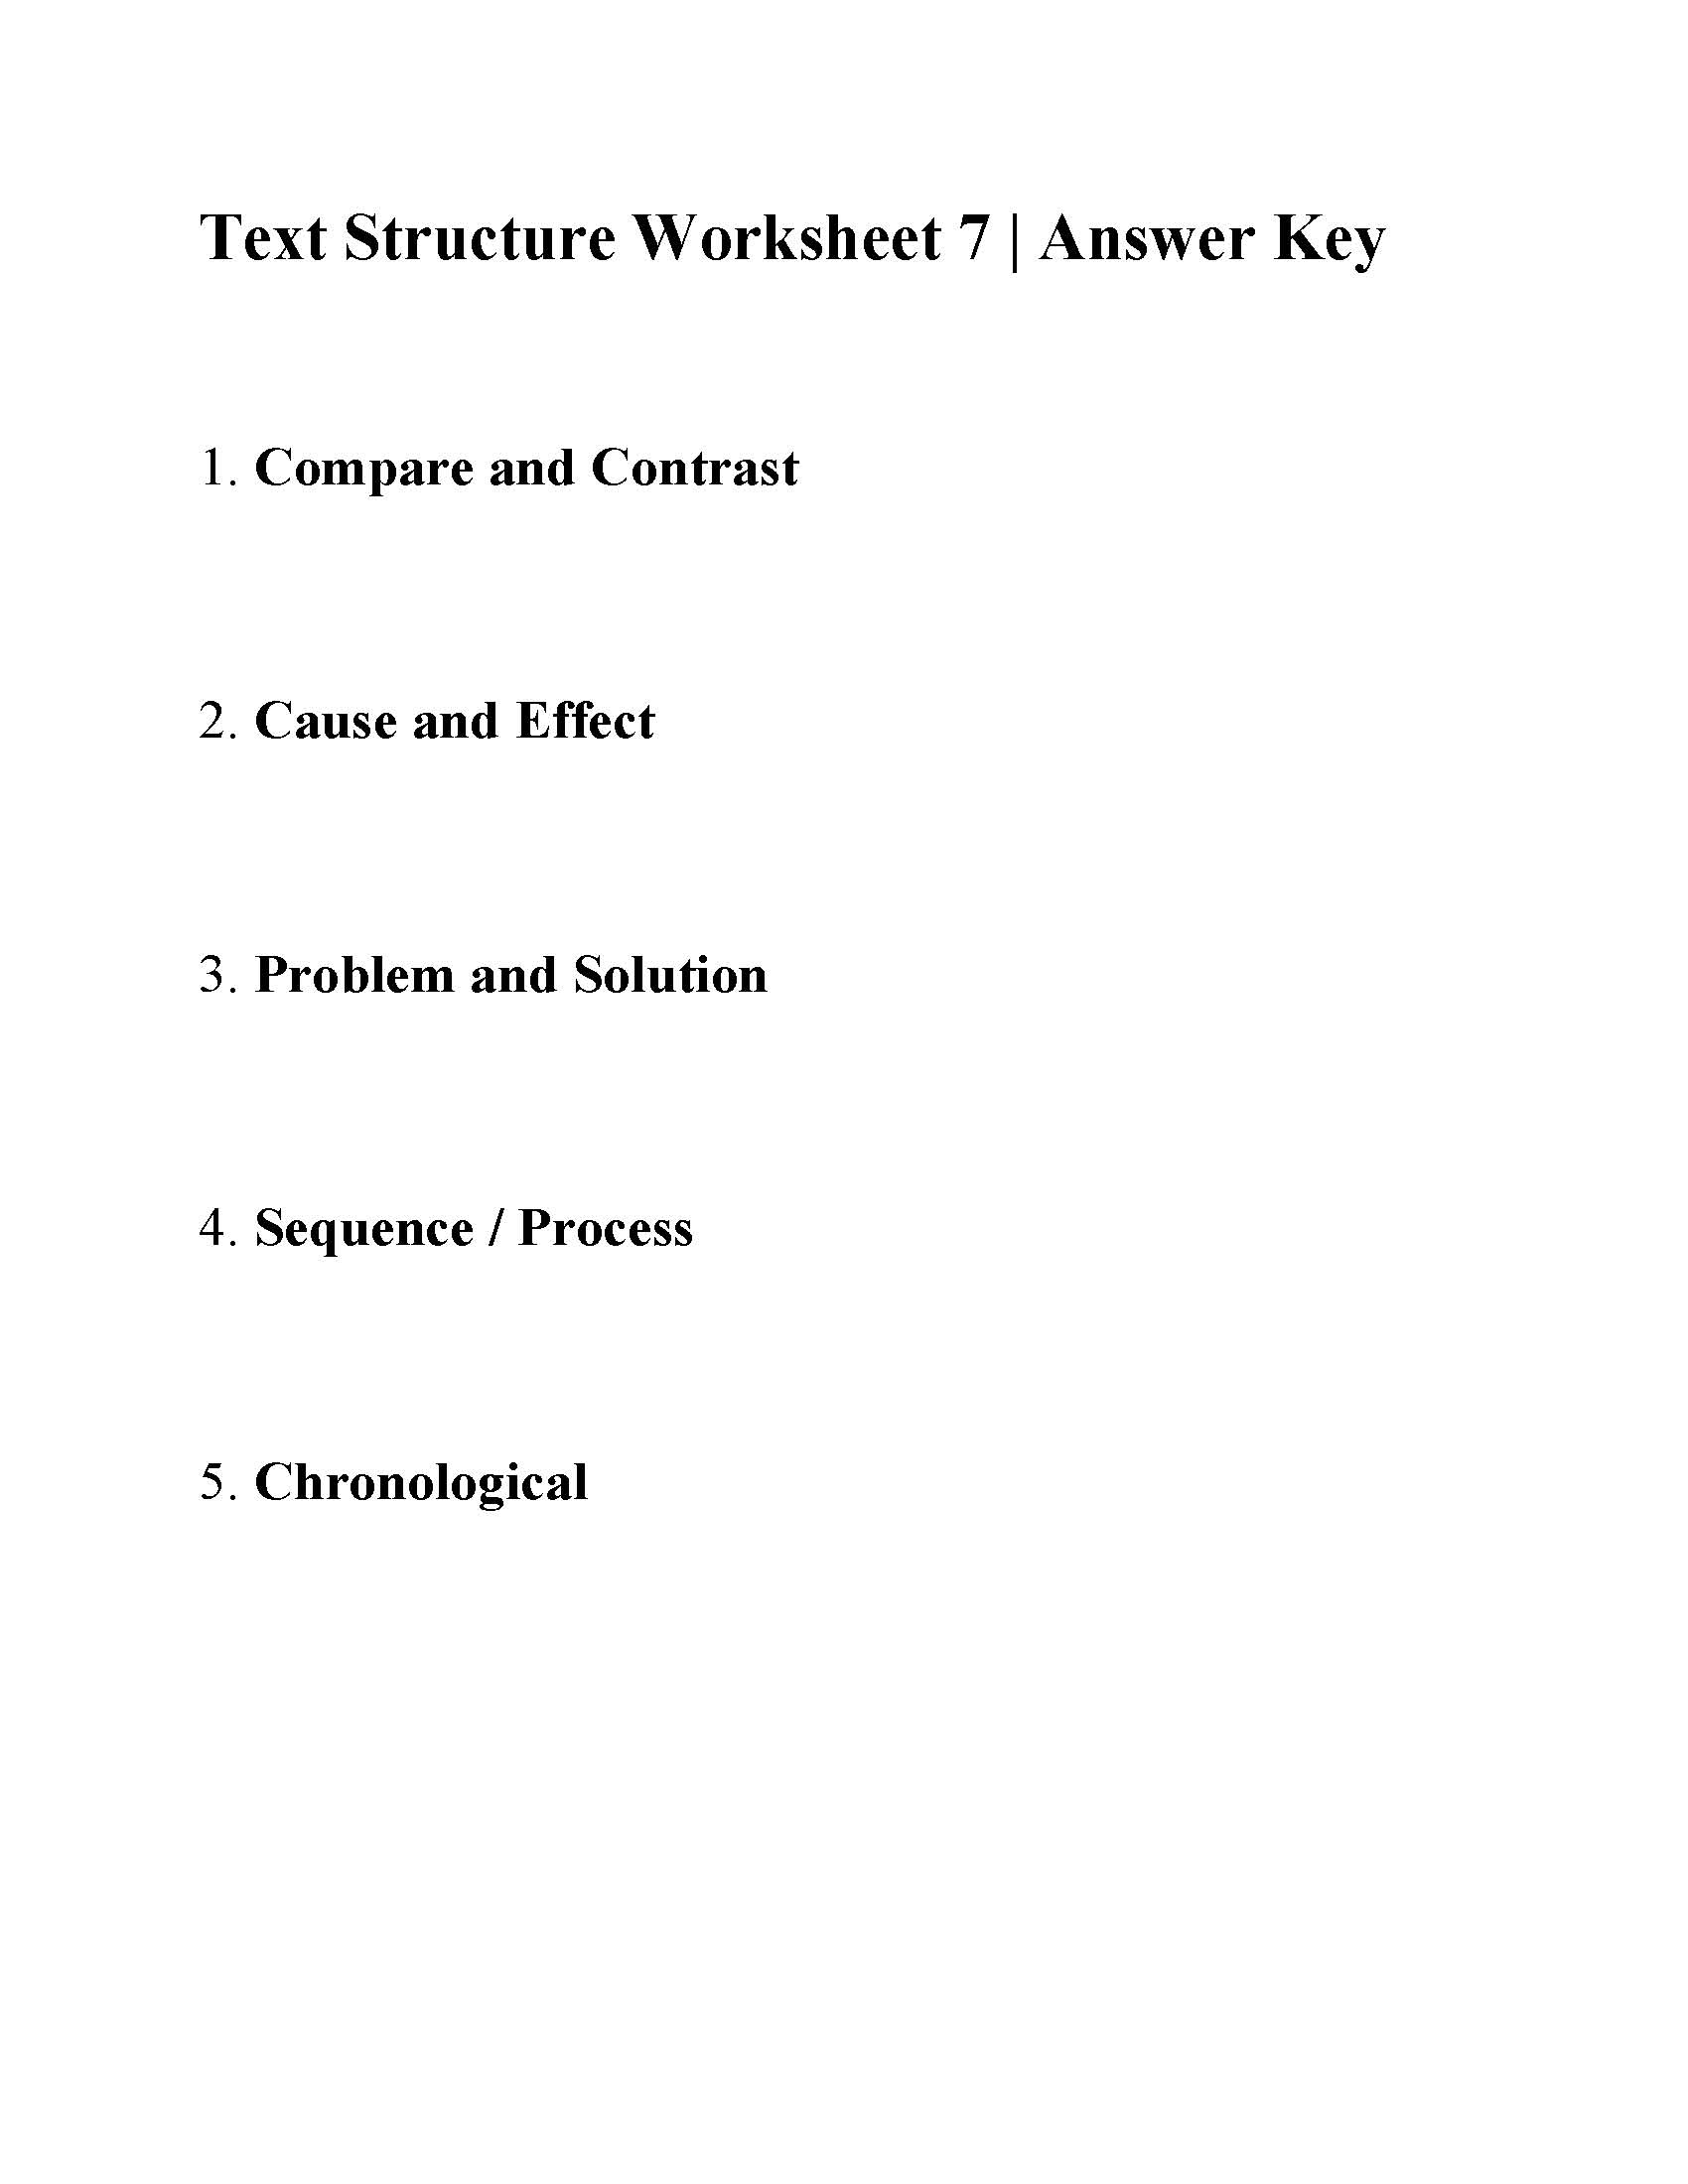 Text Structure Worksheet 7 Answers